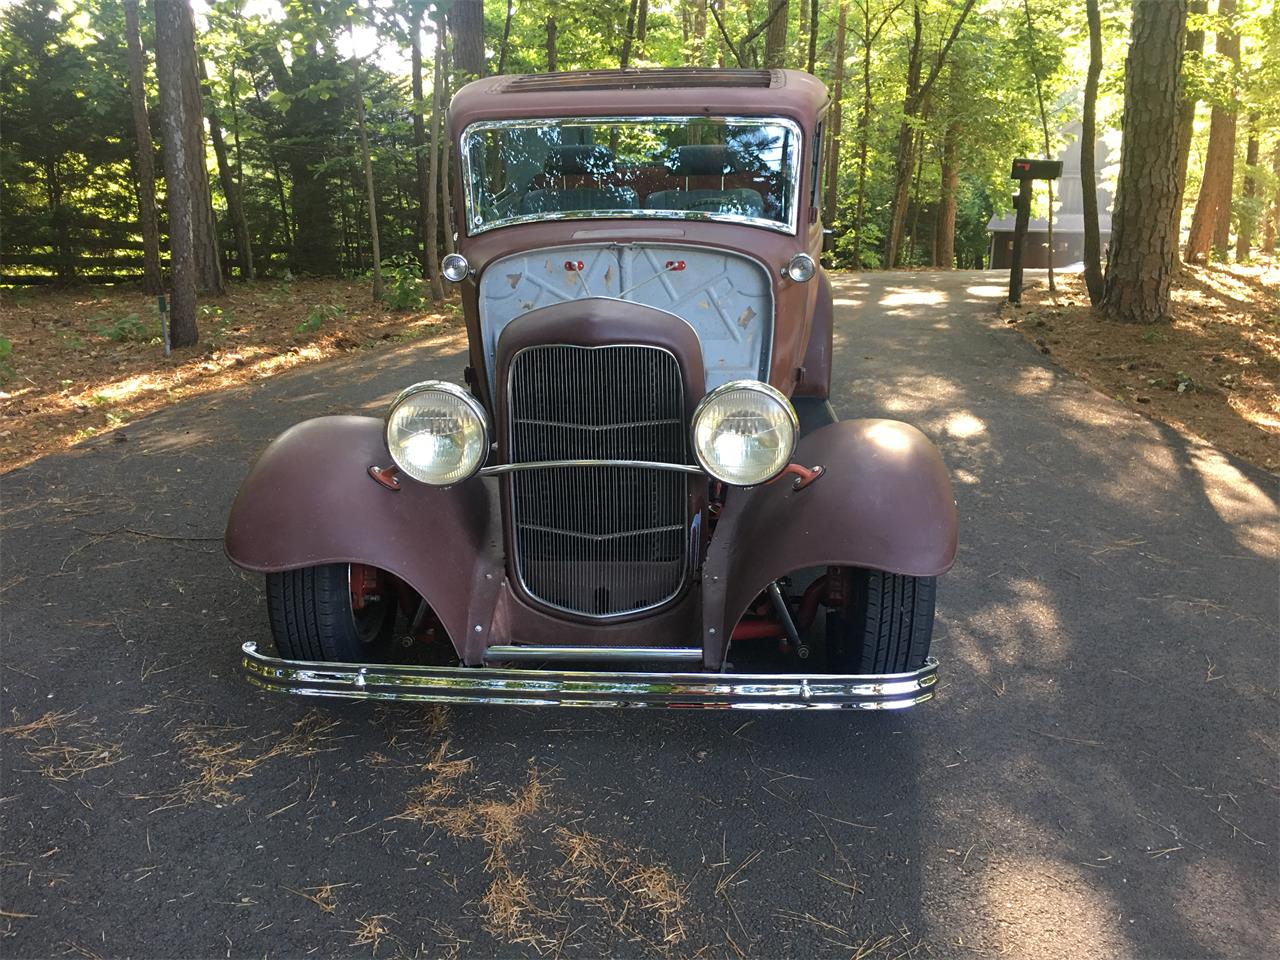 Large Picture of Classic 1932 Ford Tudor located in Kennesaw Georgia - $30,000.00 - Q796